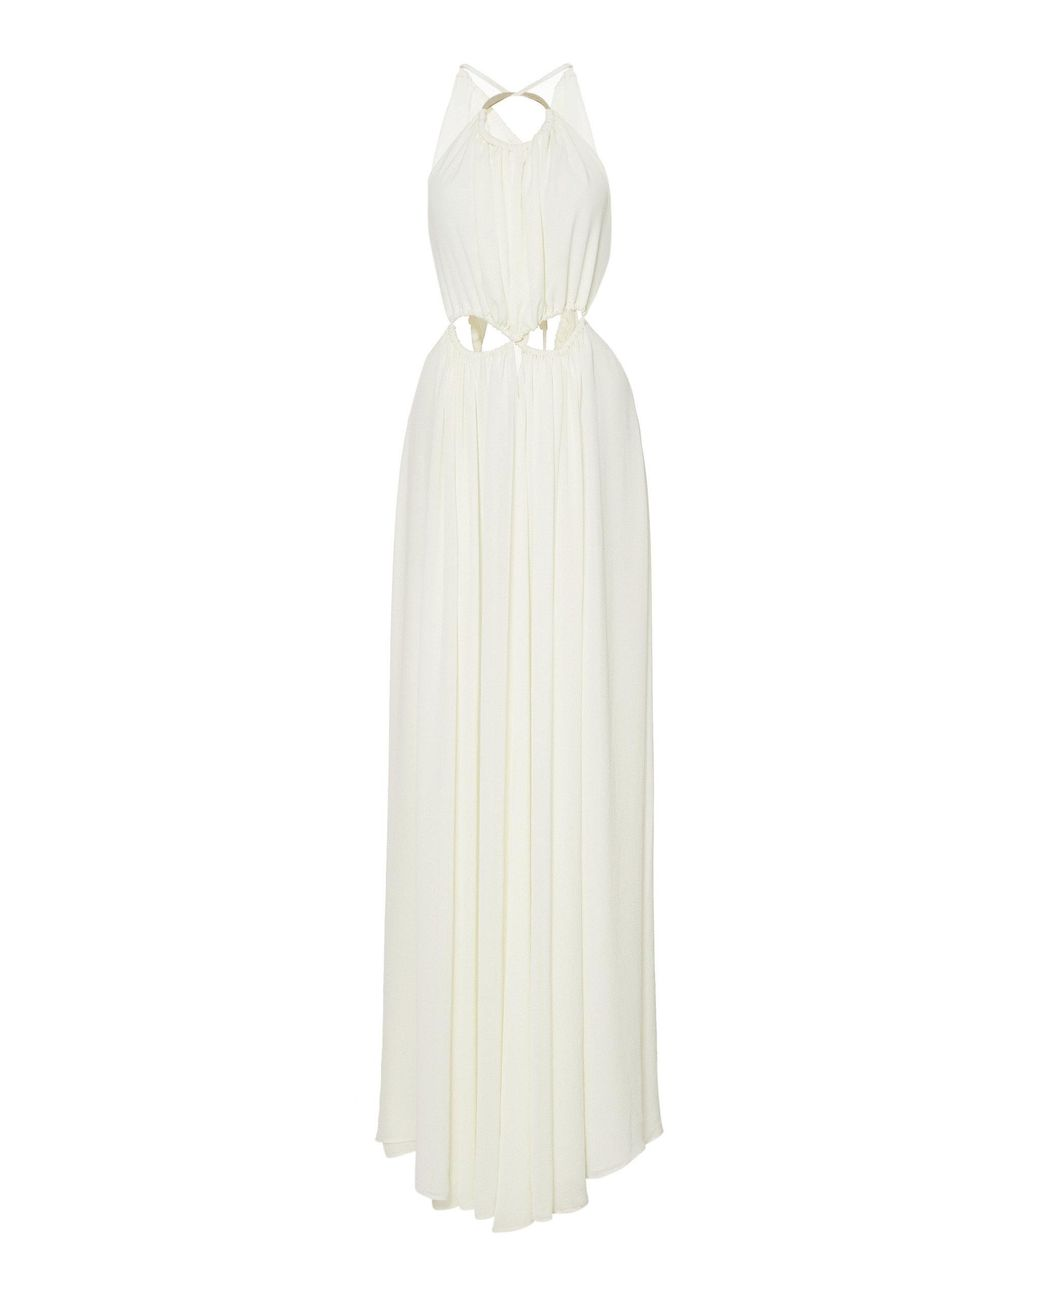 81d8df9fbd1f Cult Gaia Aphrodite Halter Maxi Dress in White - Save 48% - Lyst